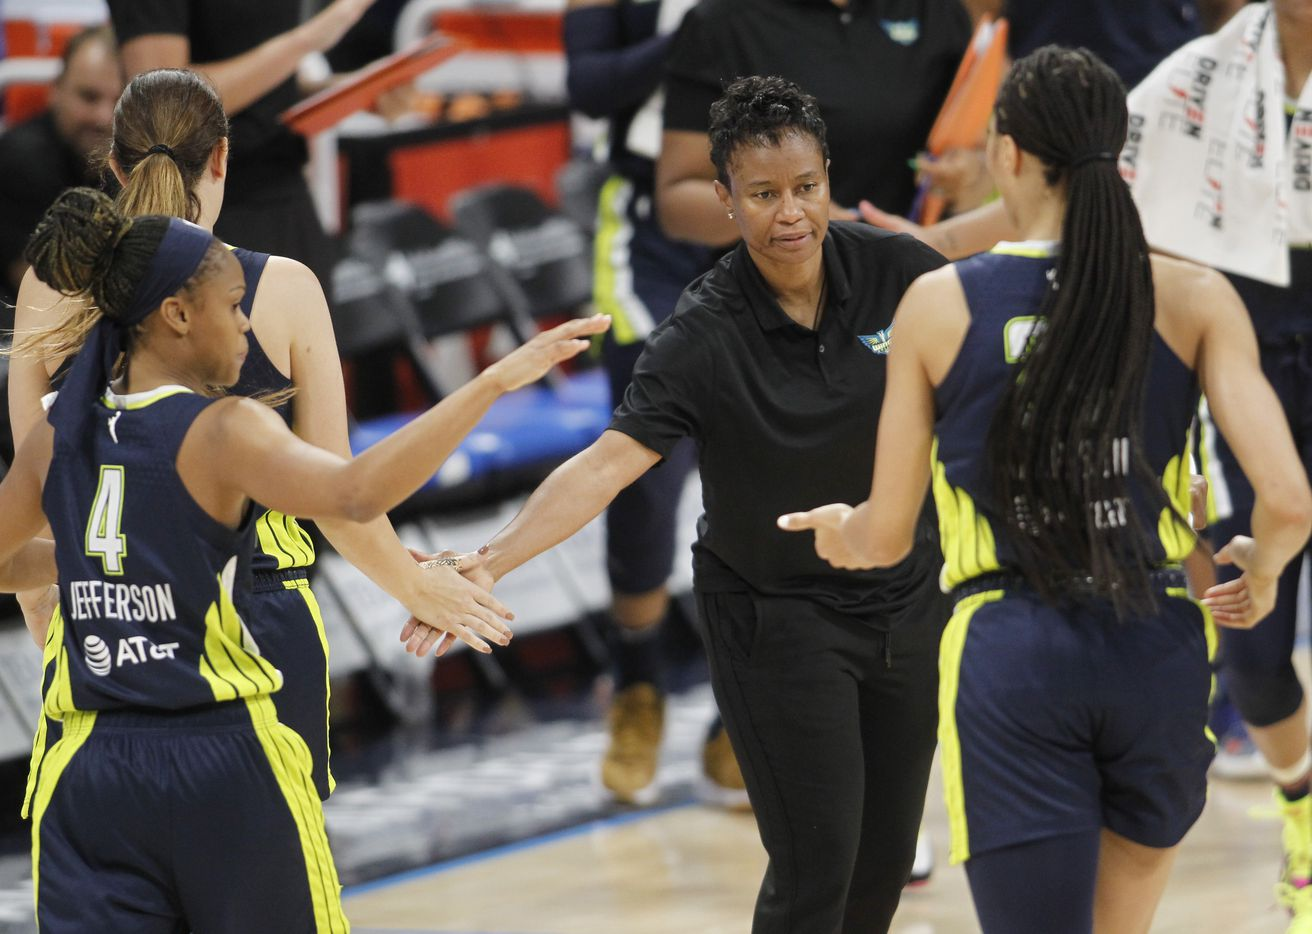 Dallas Wings head coach Vickie Johnson welcomes players to the team bench area for a first half timeout in their game against the Chicago Sky. Dallas lost to Chicago 91-81.The two WNBA teams played their game at College Park Center in Arlington on June 30, 2021. (Steve Hamm/ Special Contributor)